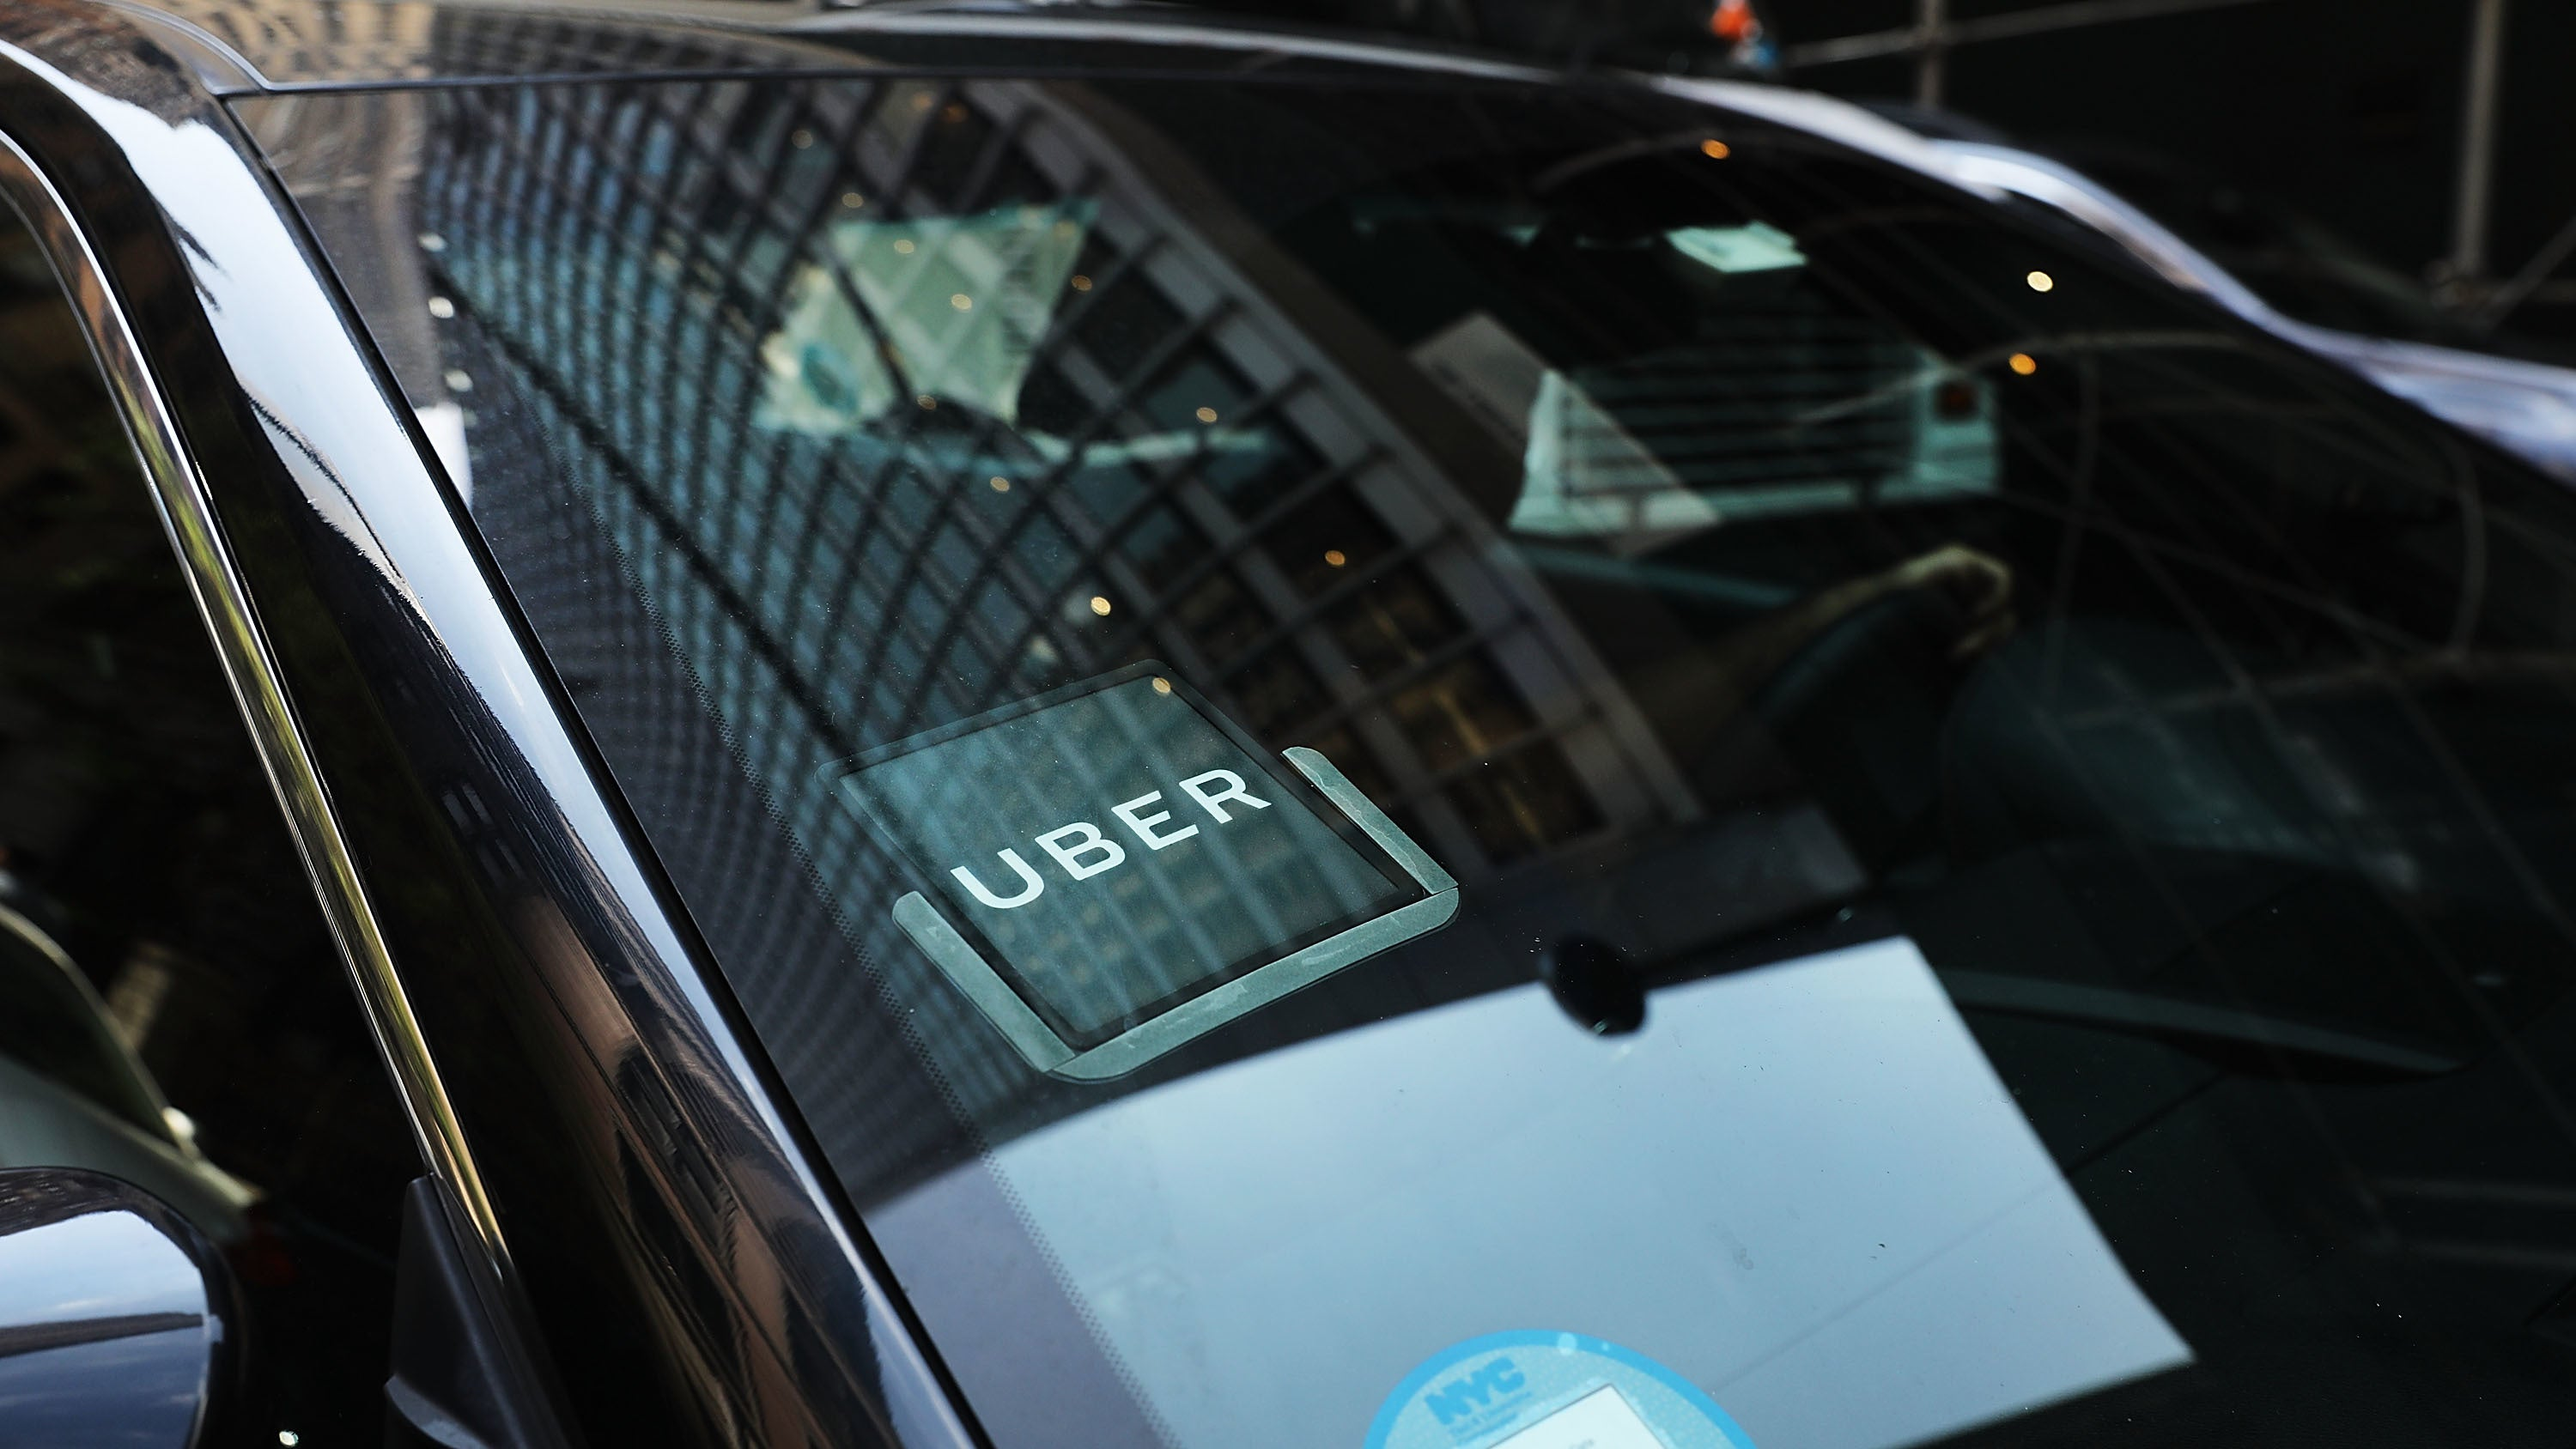 Some Uber Drivers Are Changing Rider Ratings In Retaliation For Bad Reviews